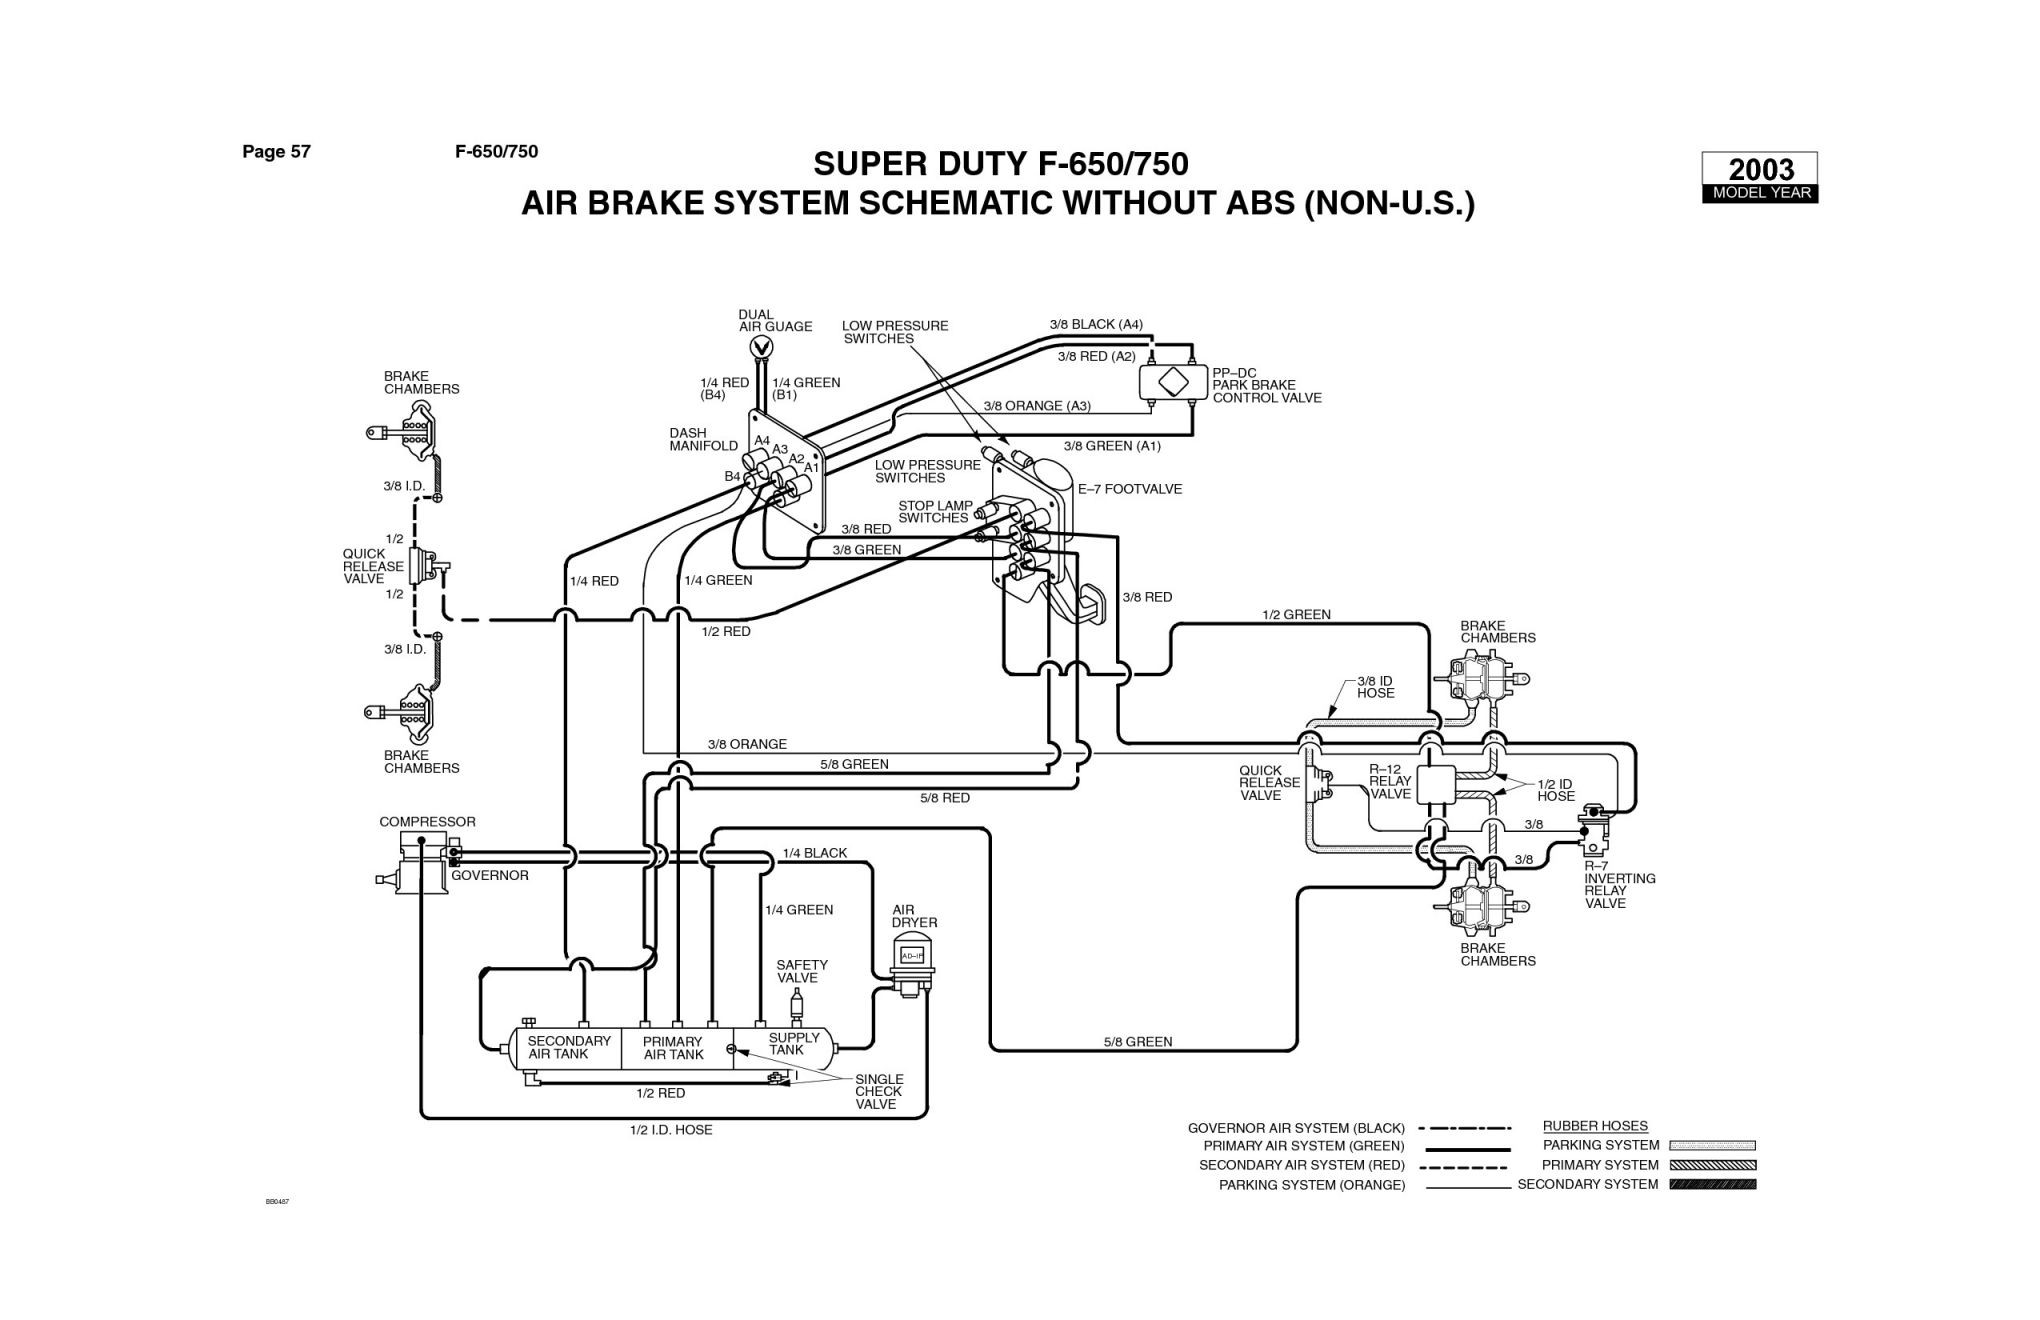 Truck Air Brake System Diagram Manual Fresh Pneumatic Brake System Xp13 – Documentaries for Change Of Truck Air Brake System Diagram Manual Volvo Brake Wiring Library Wiring Diagram •